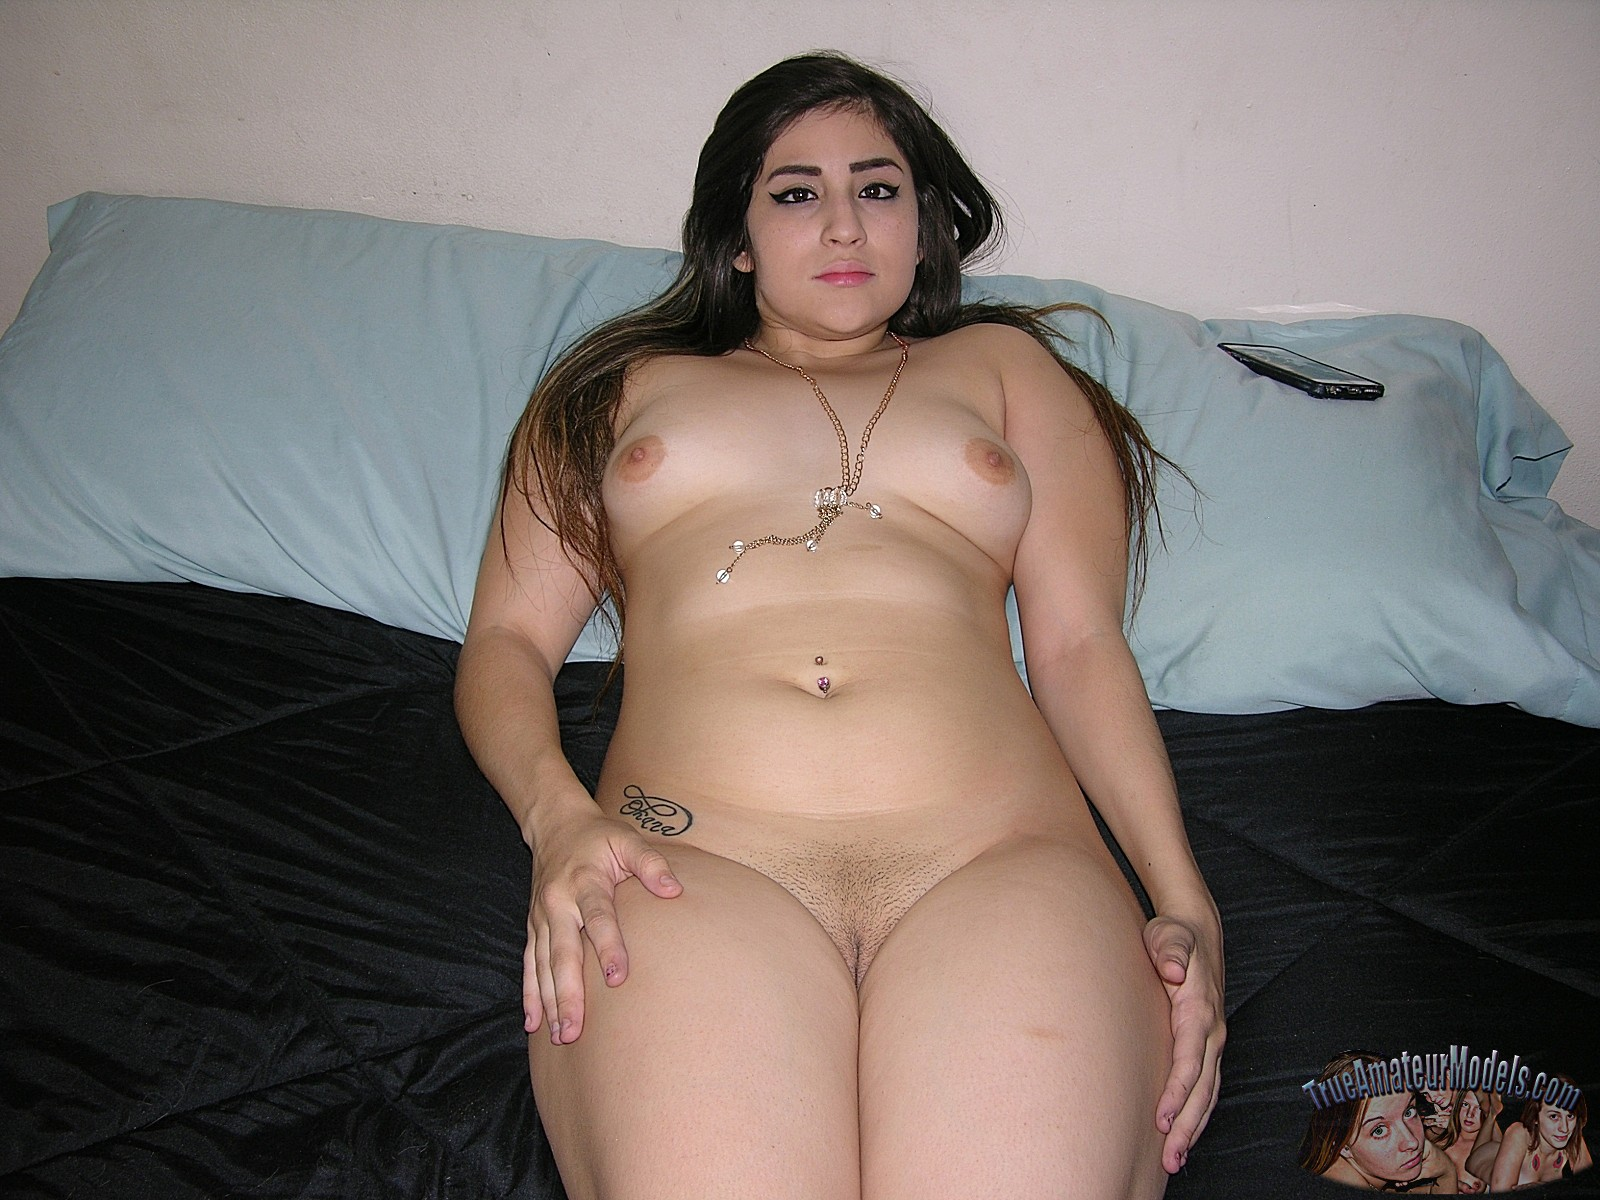 Think, Latina amateur porn pics absolutely agree